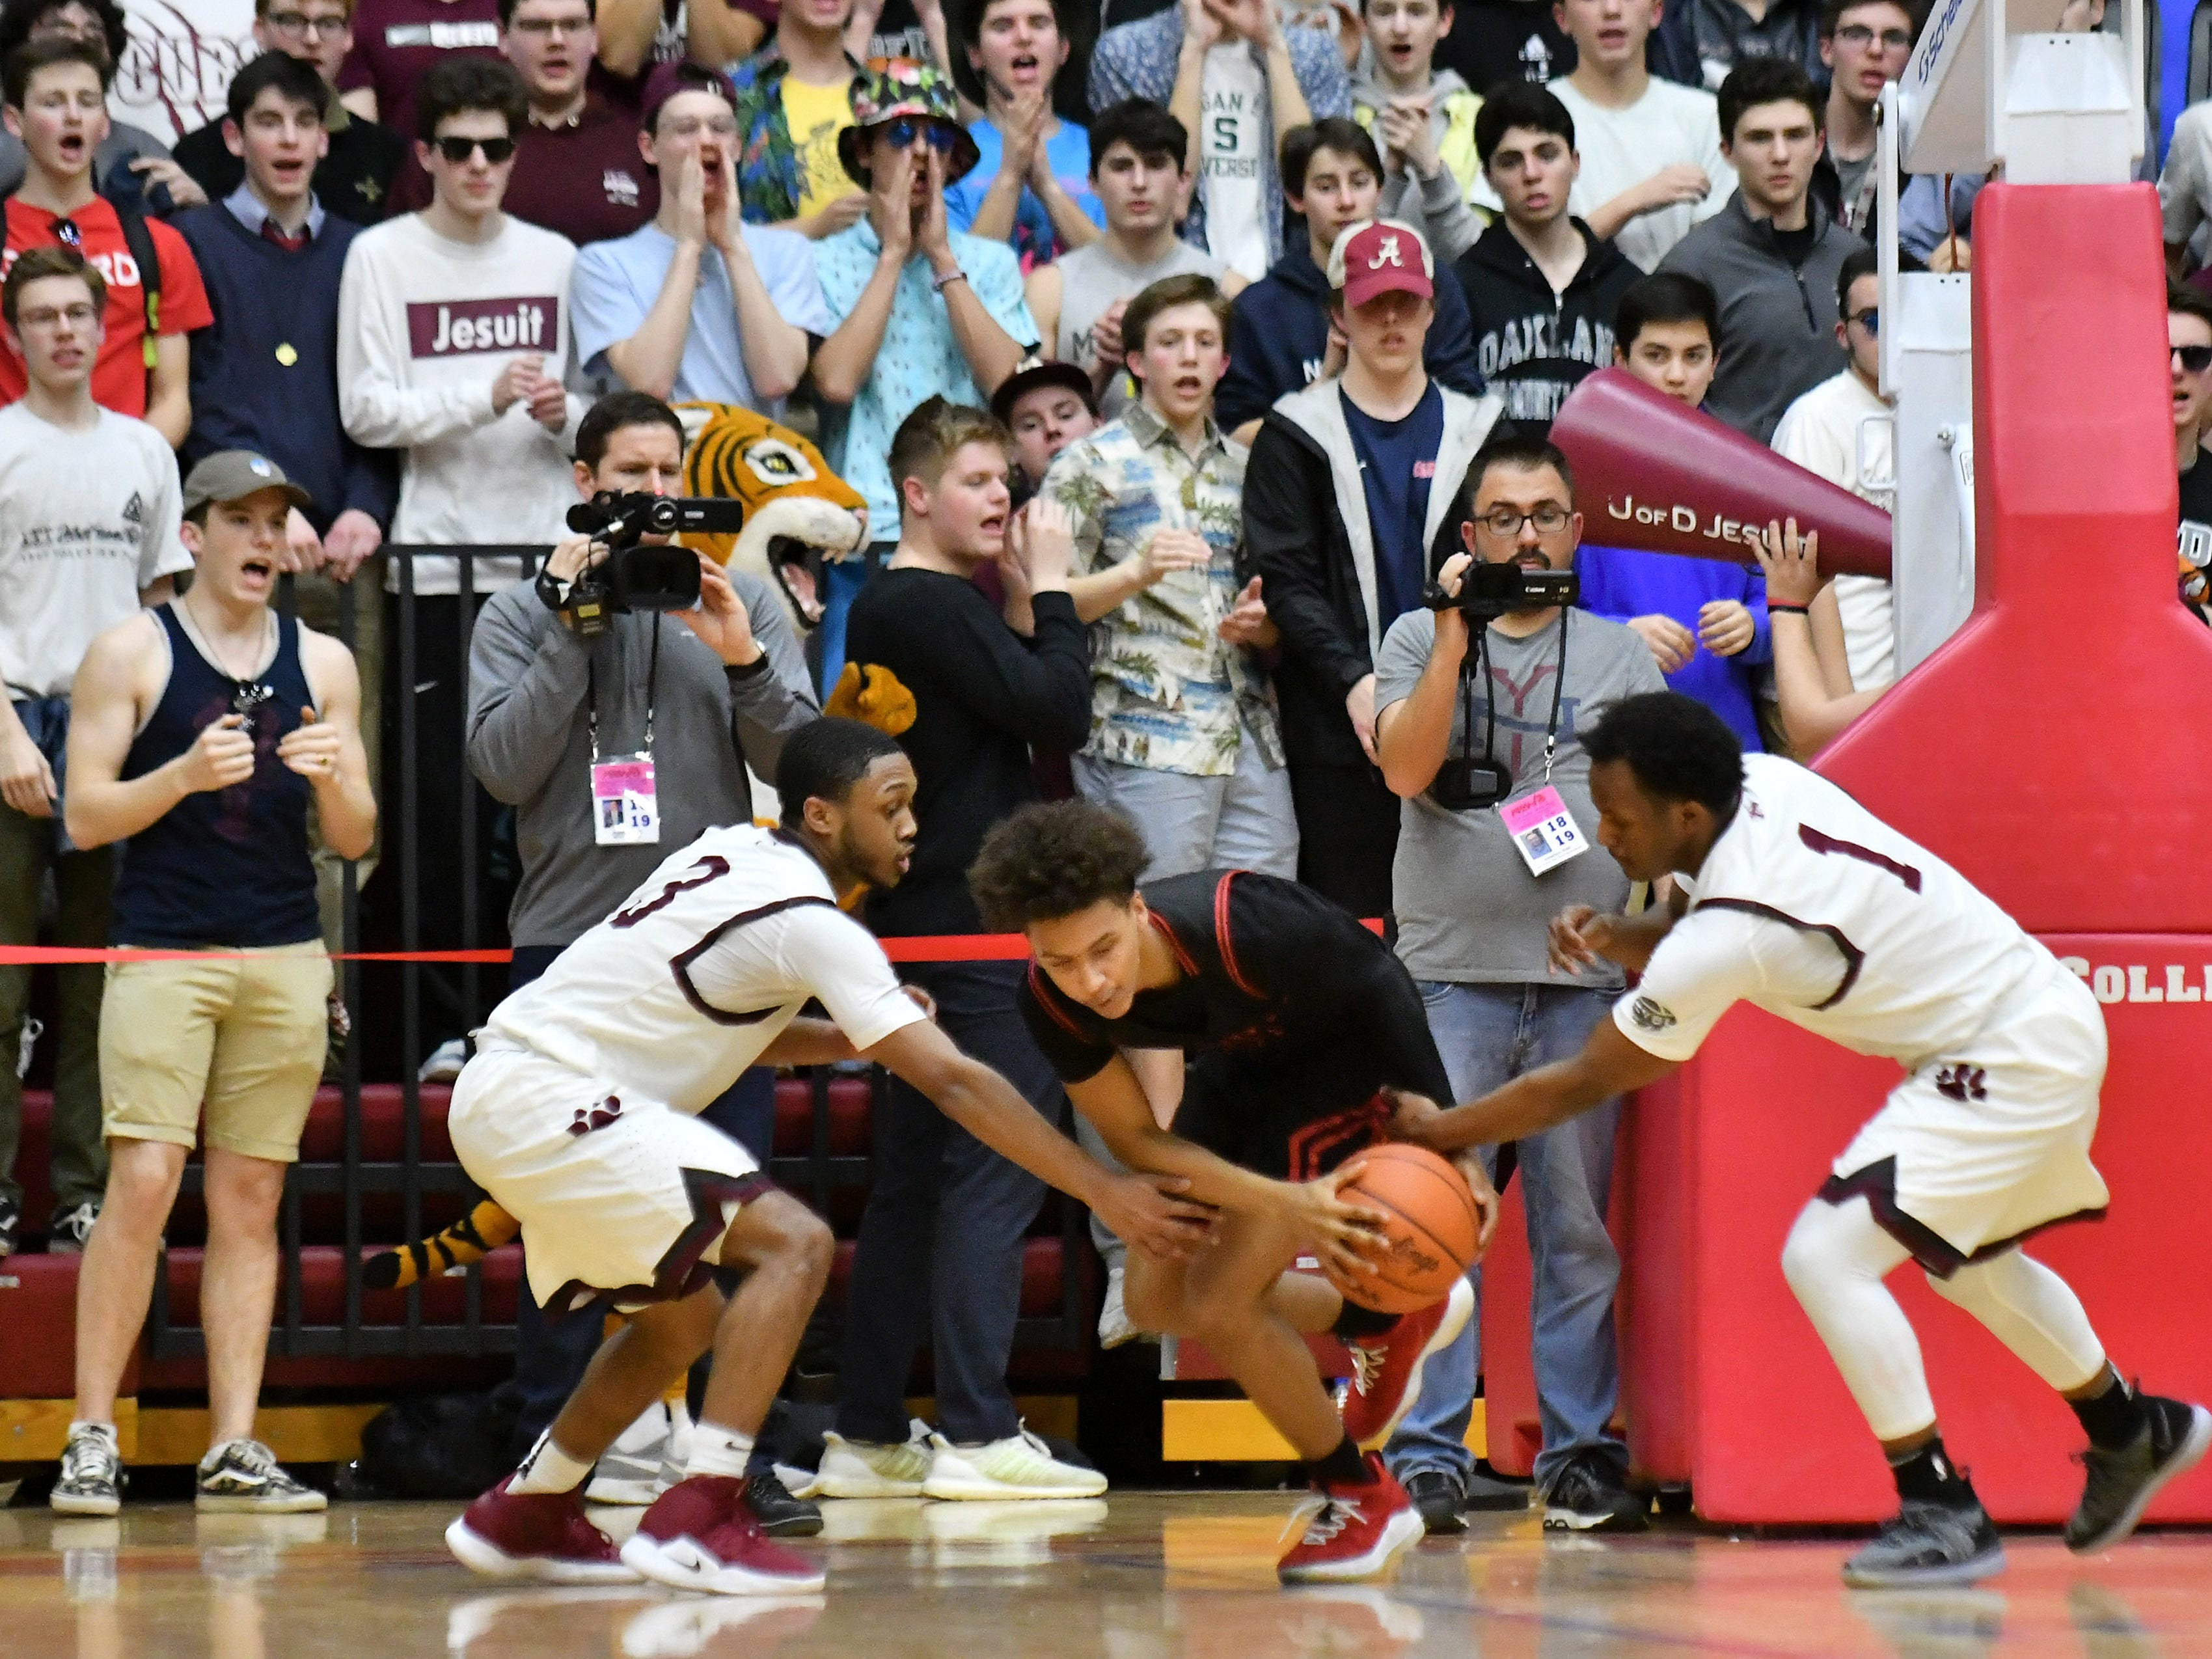 U-D Jesuit's Jordan Montgomery, left, and Julian Dozier, right, try to get the ball from Roseville's Isiah Collier-Foutz in the first half.